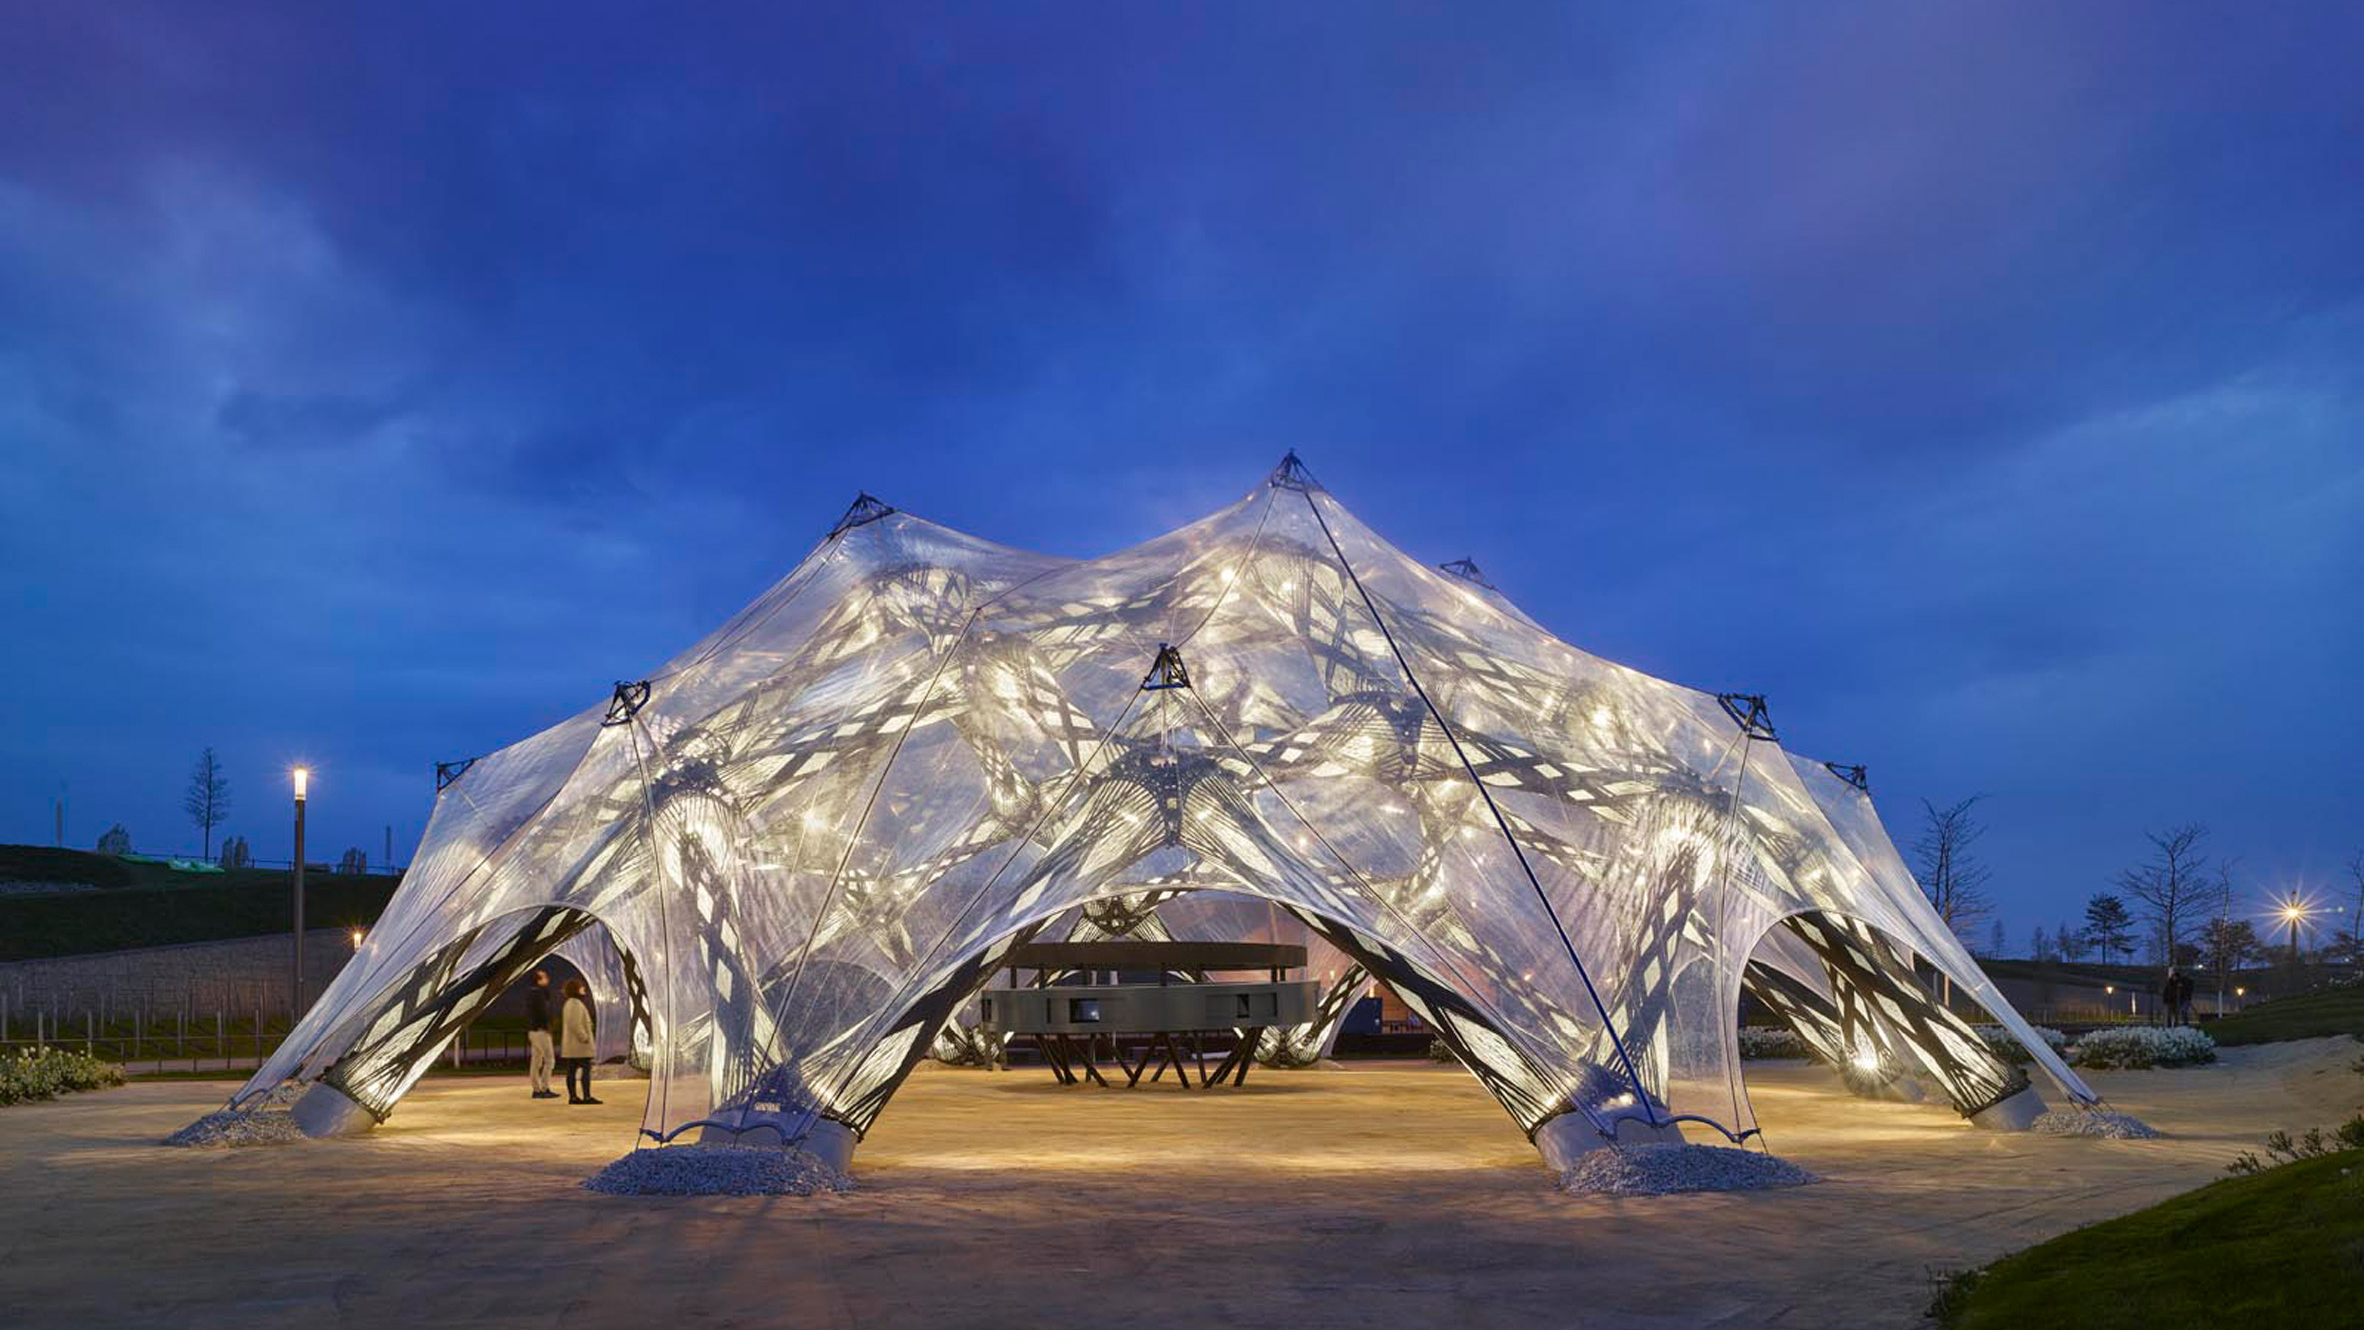 University of Stuttgart creates biomimetic pavilions based on sea urchins and beetle wings